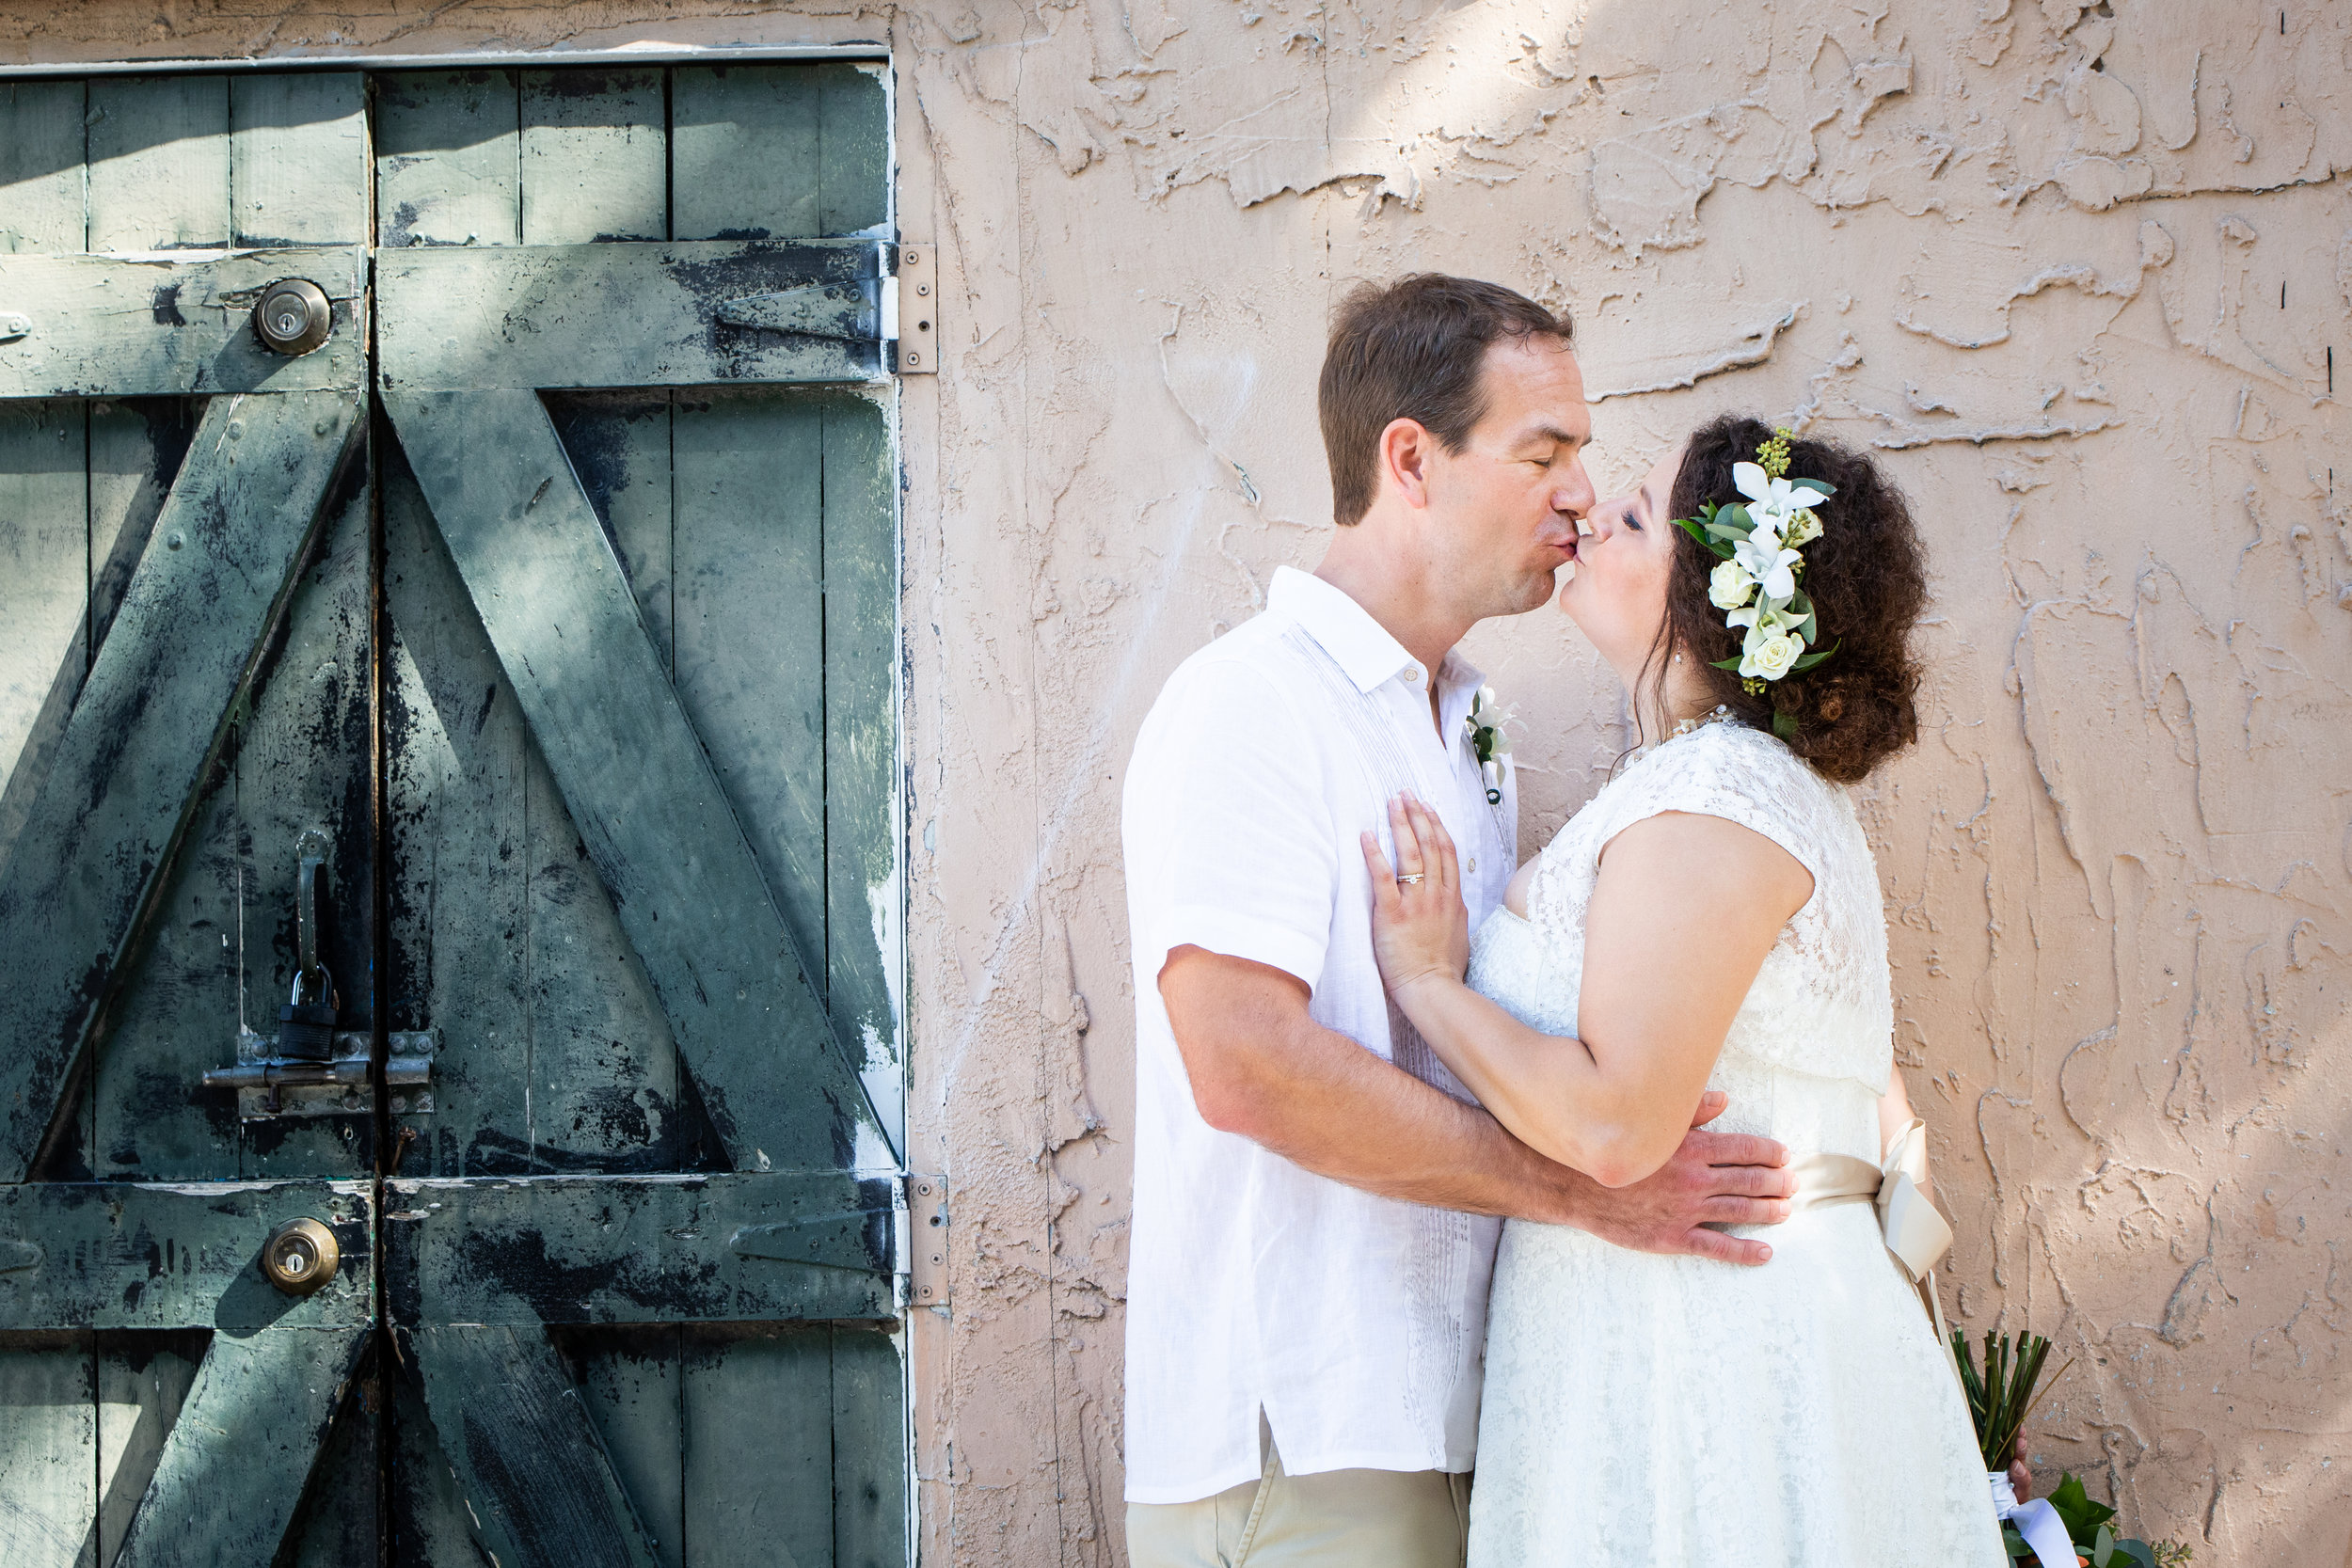 Couple Kissing Against Light Peach Wall in Key West